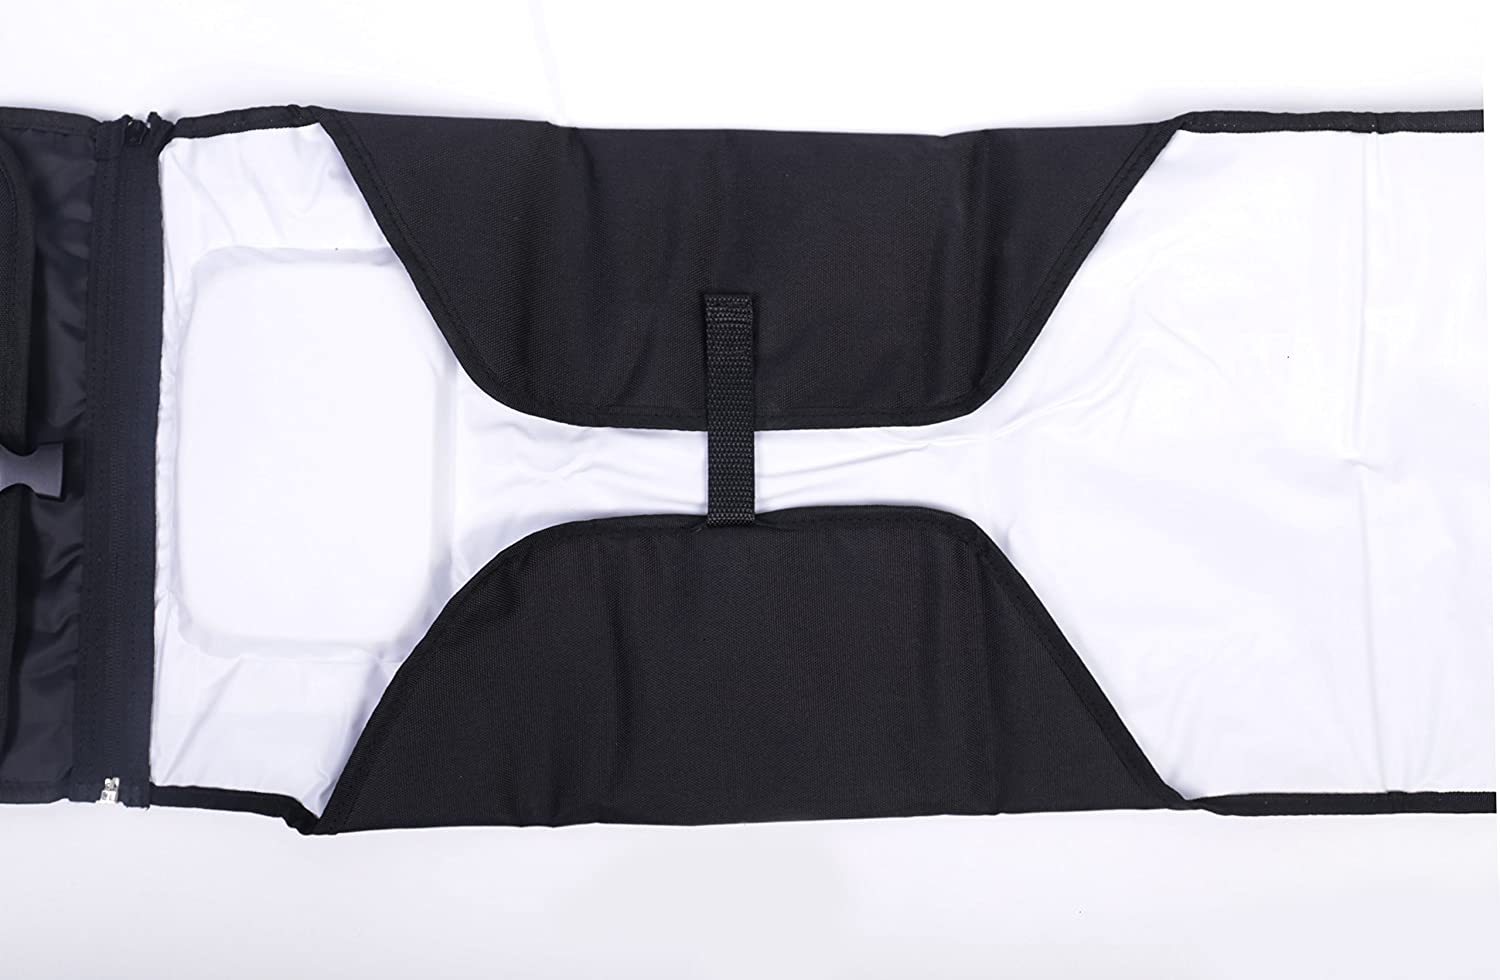 Baby Nappy Changing Mat//Diaper Changing Pad with Storage Pockets//Portable Nappy Changing Station Kit//Clutch Design for Travel and Home